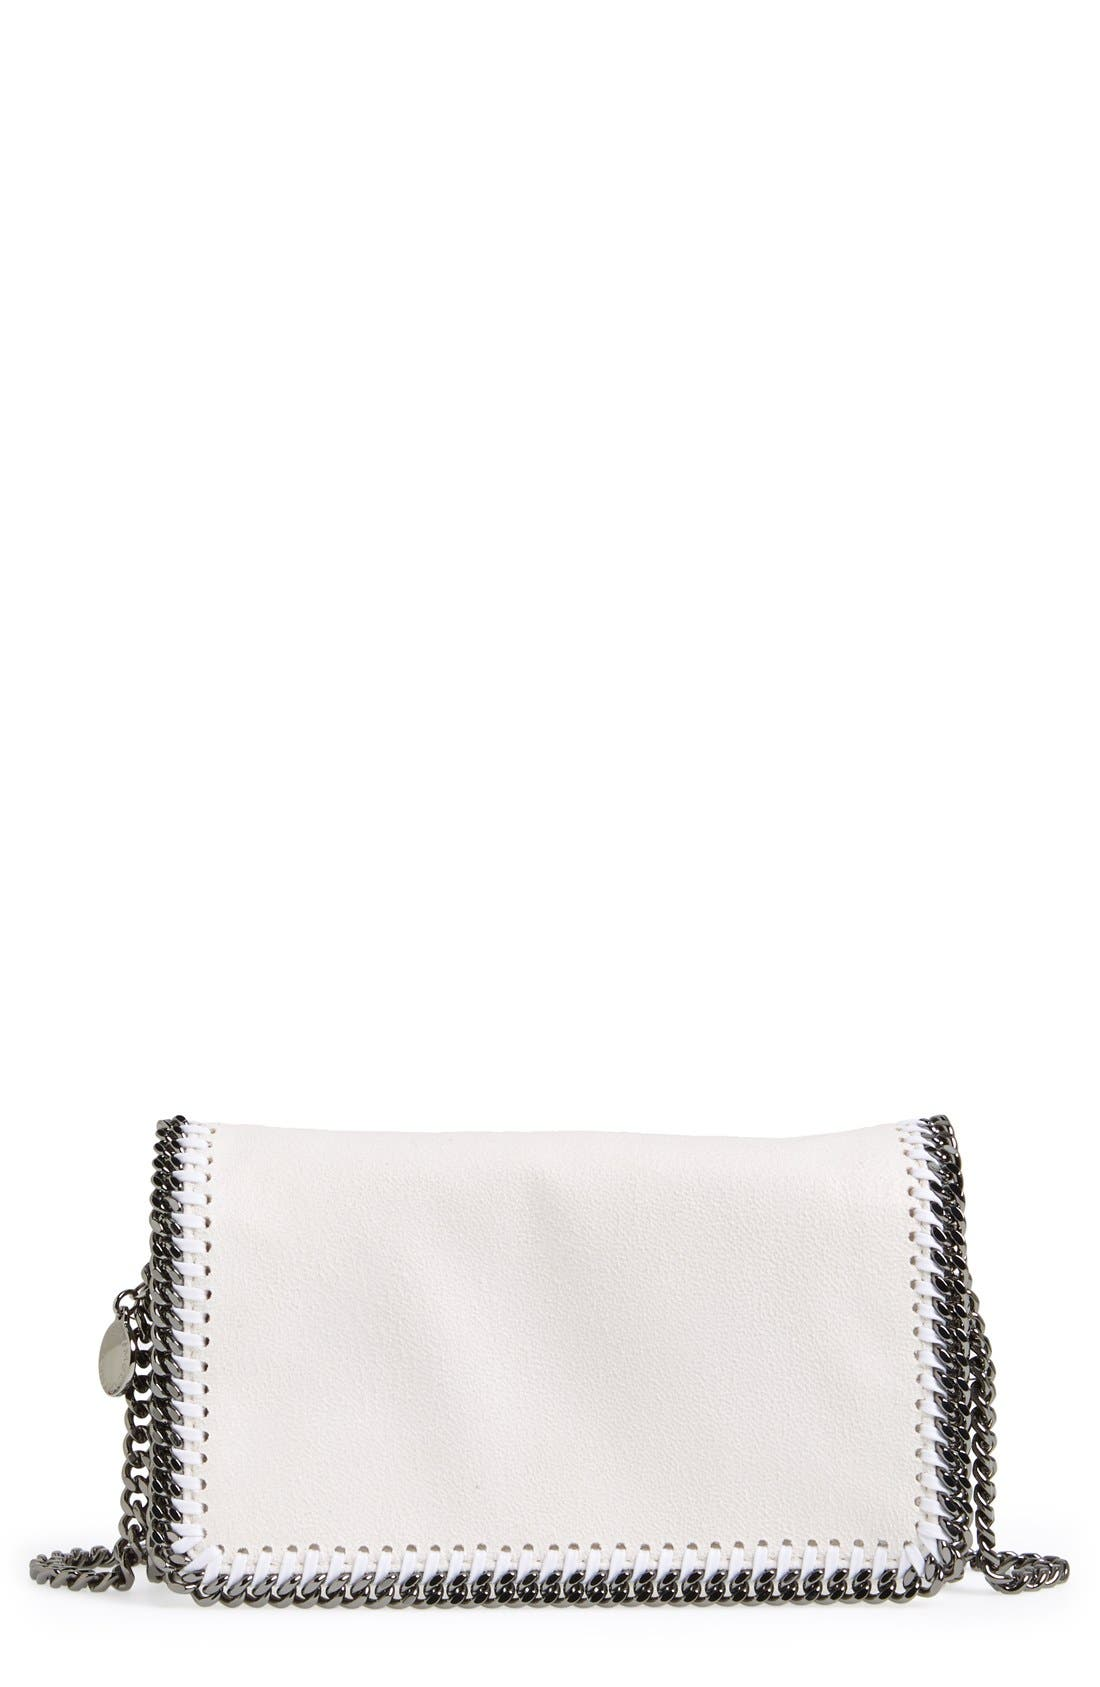 Alternate Image 1 Selected - Stella McCartney 'Falabella' Shaggy Deer Convertible Crossbody Bag